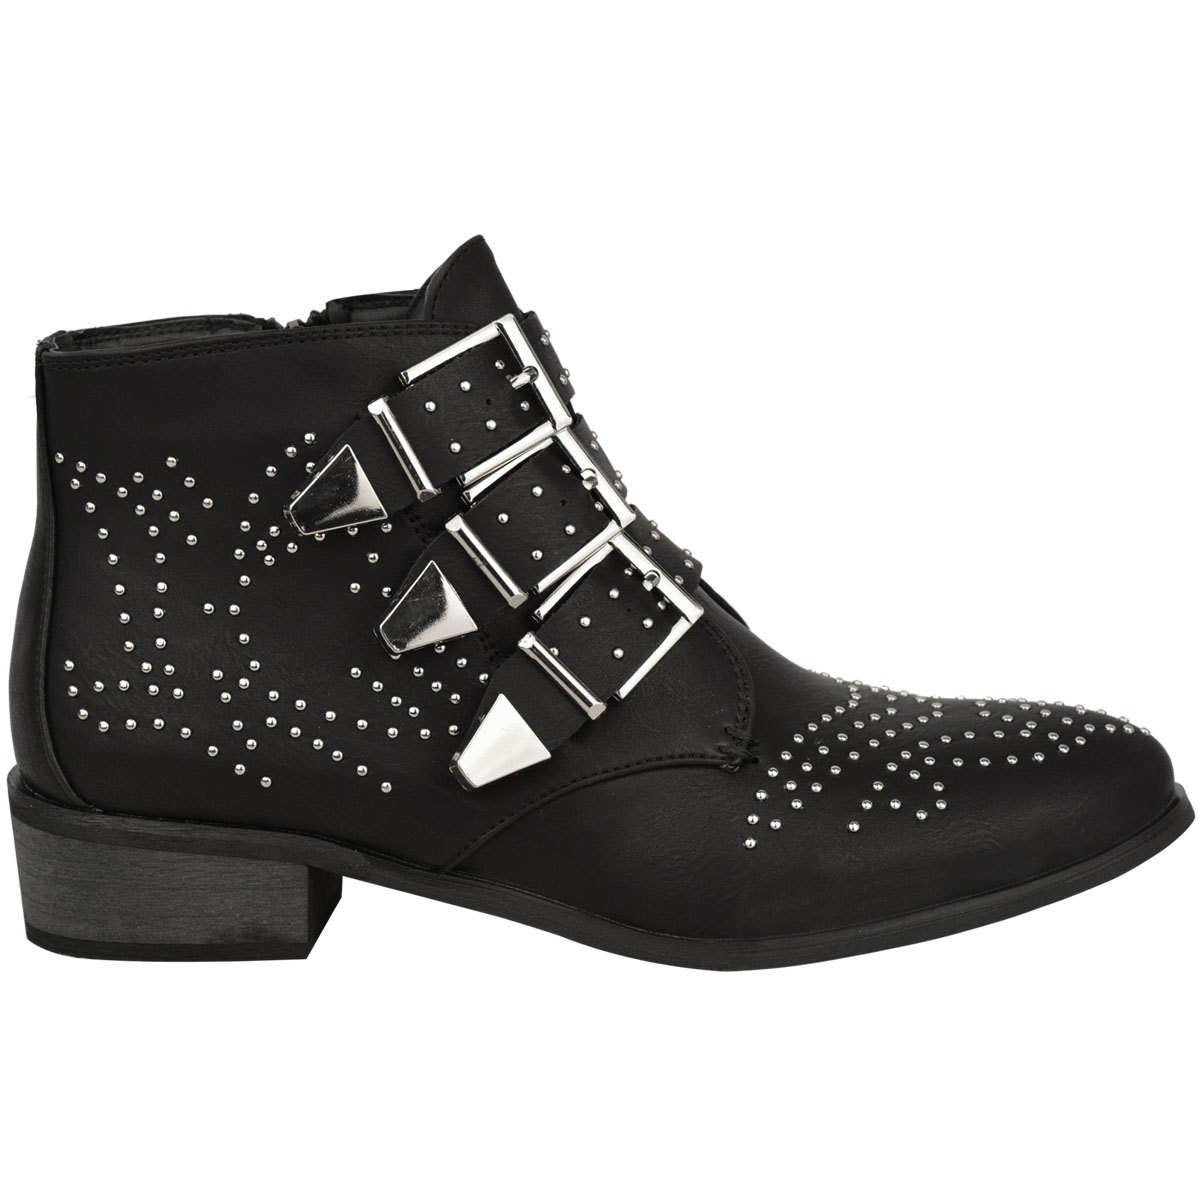 6d2ef995e51 Womens Ladies Studded Flat Low Heel Cowboy Ankle Boots Buckle ...